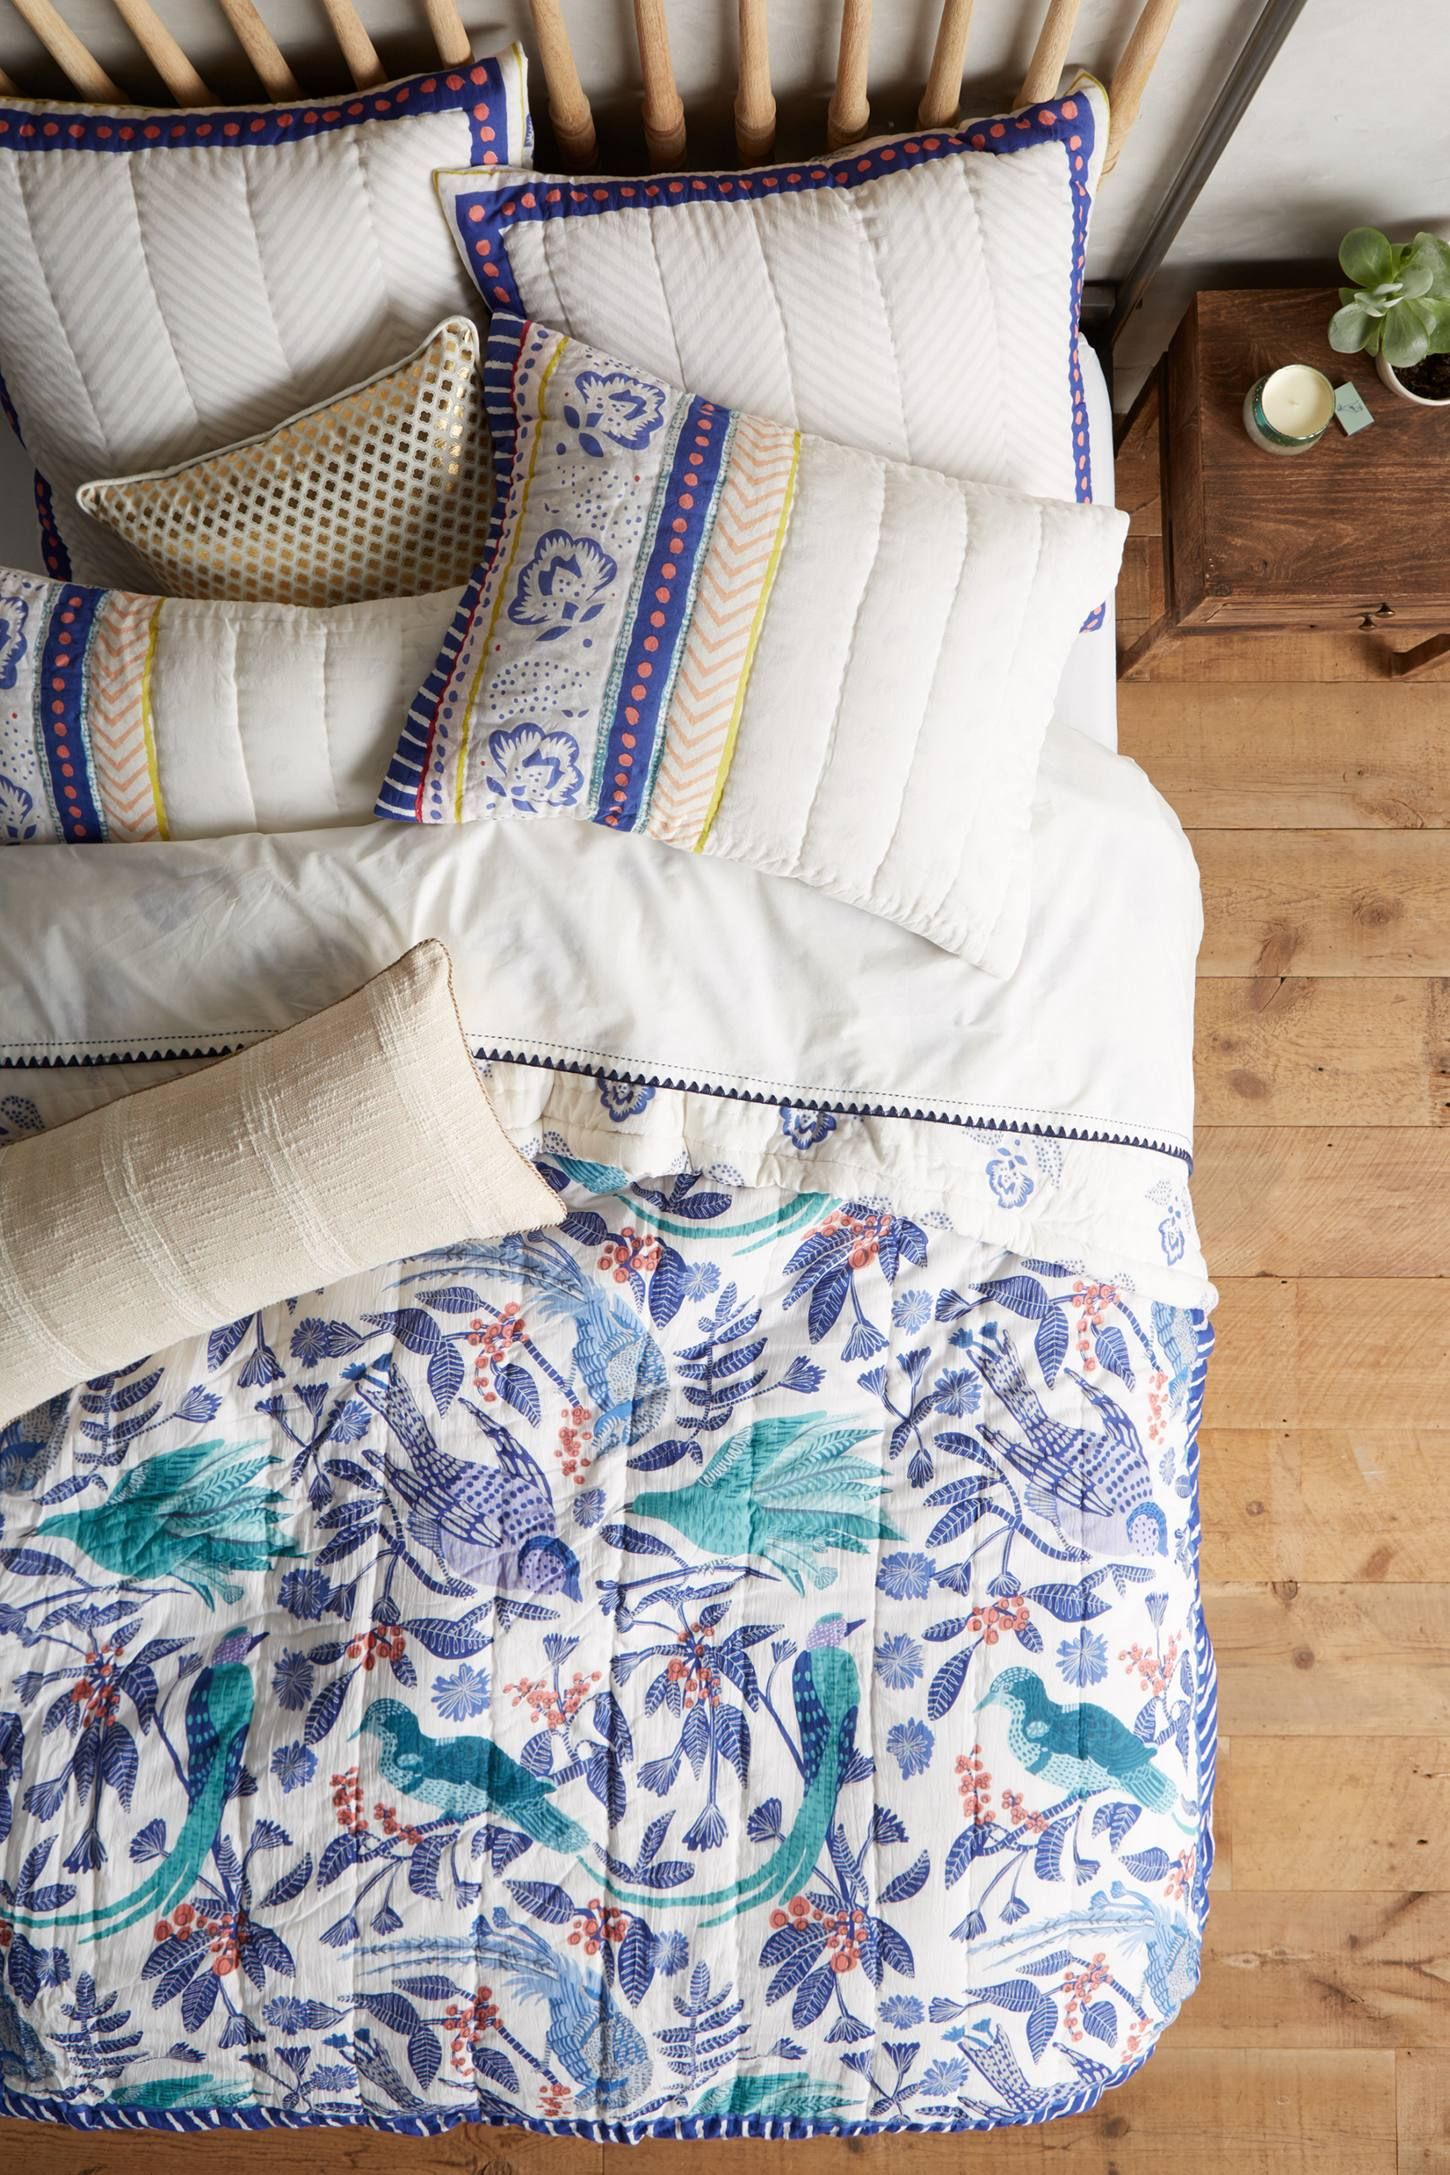 Bisbita Quilt | Anthropologie, Bedrooms and Master bedroom : tahla quilt anthropologie - Adamdwight.com